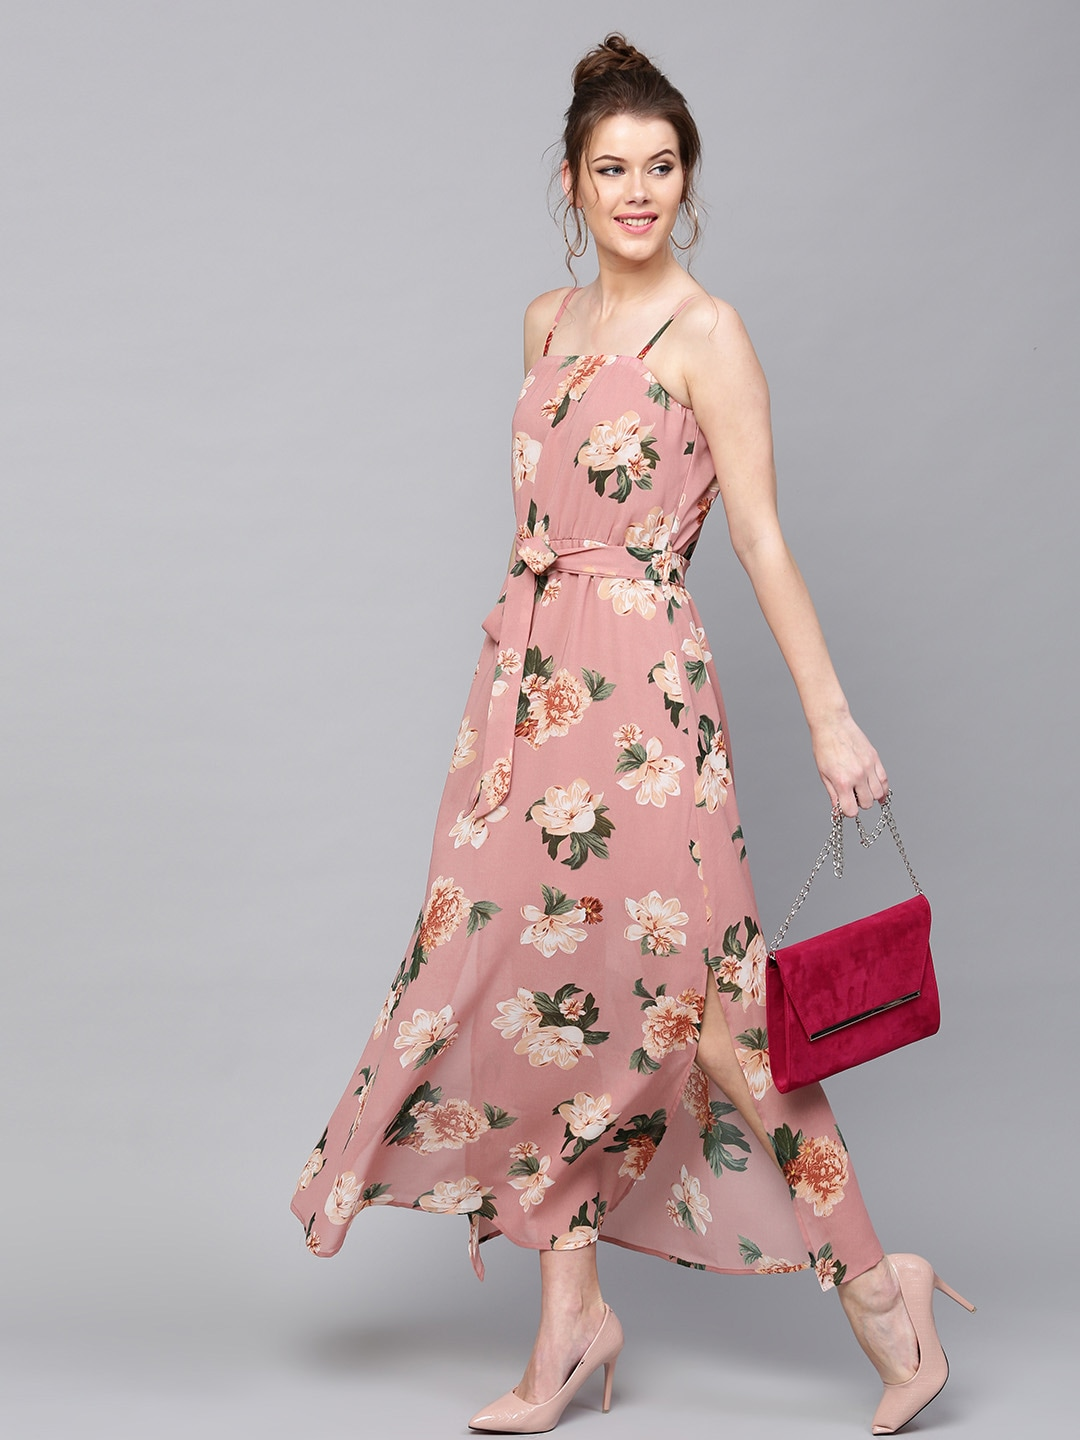 84b7bf0bb378 Long Dresses - Buy Maxi Dresses for Women Online in India - Upto 70% OFF